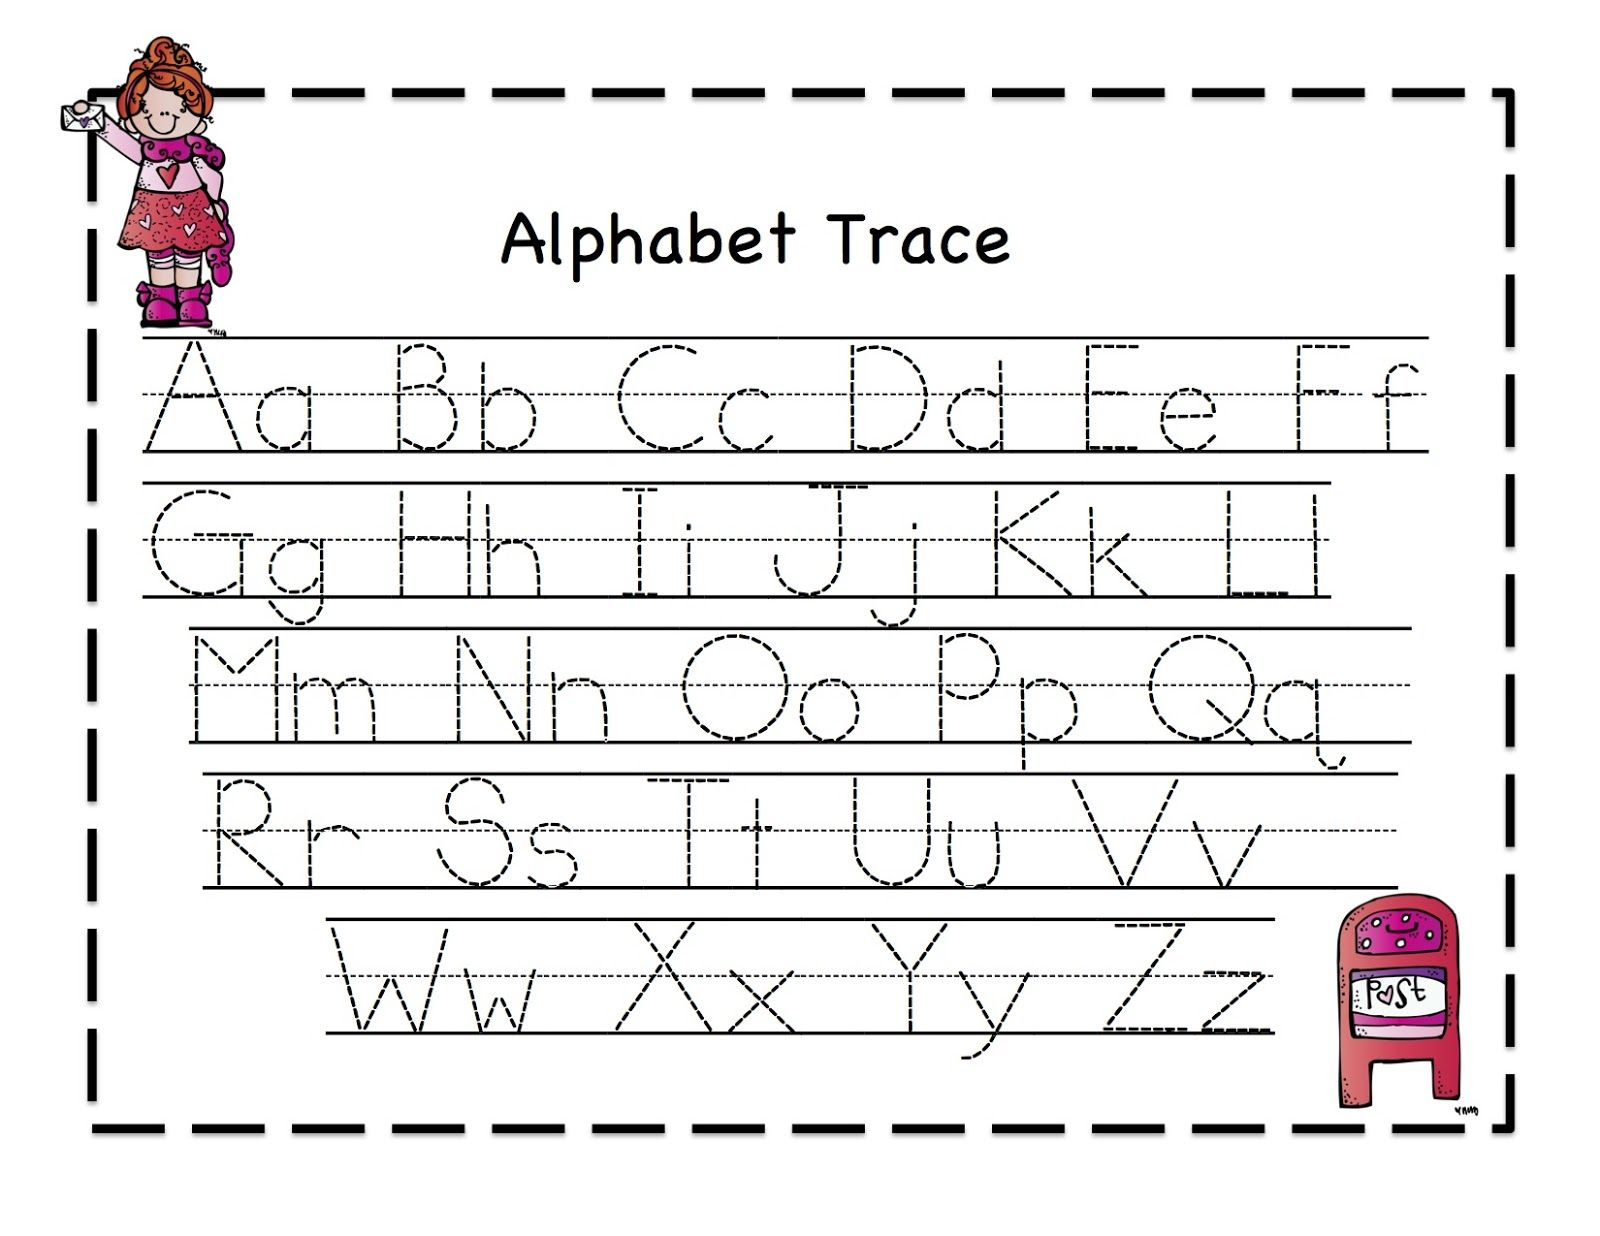 Alphabet Tracing Pages 2014 Printable | Alphabet Tracing regarding Alphabet Tracing Pages